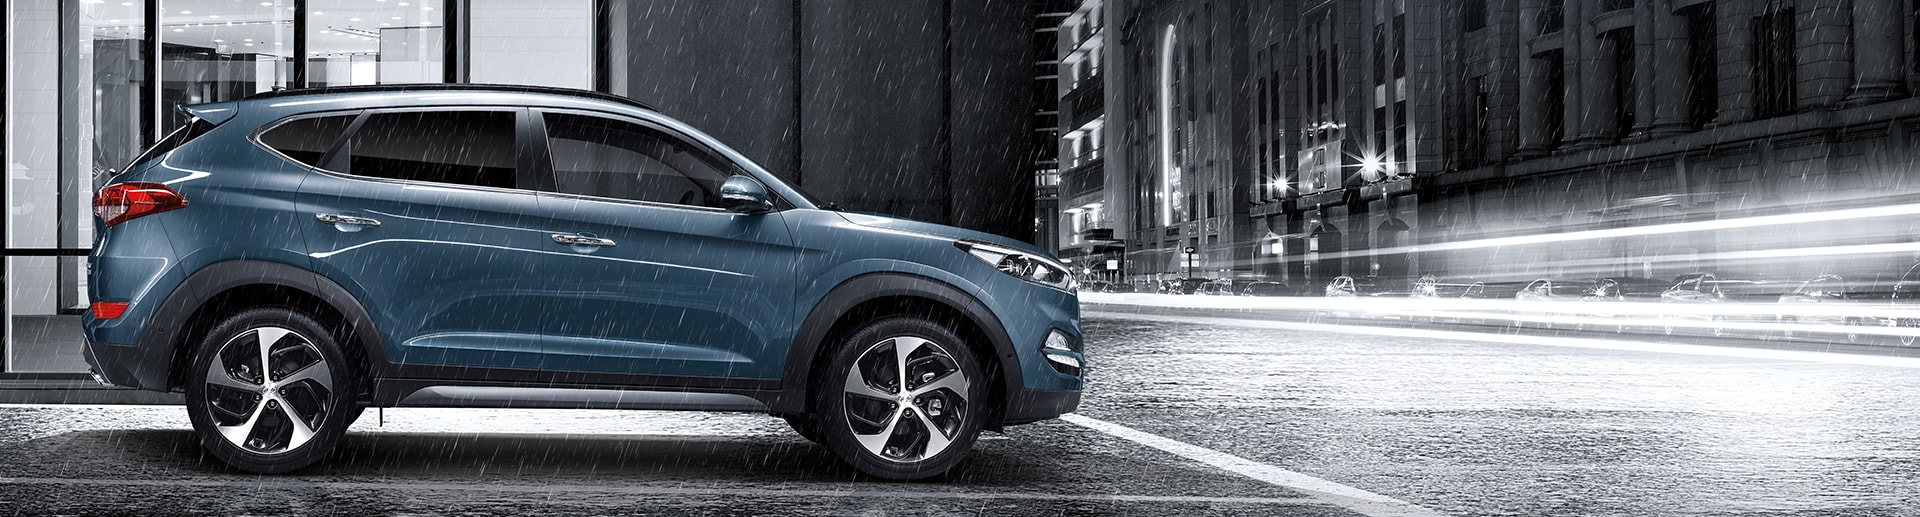 2018 Hyundai Tucson in WInnipeg, MB